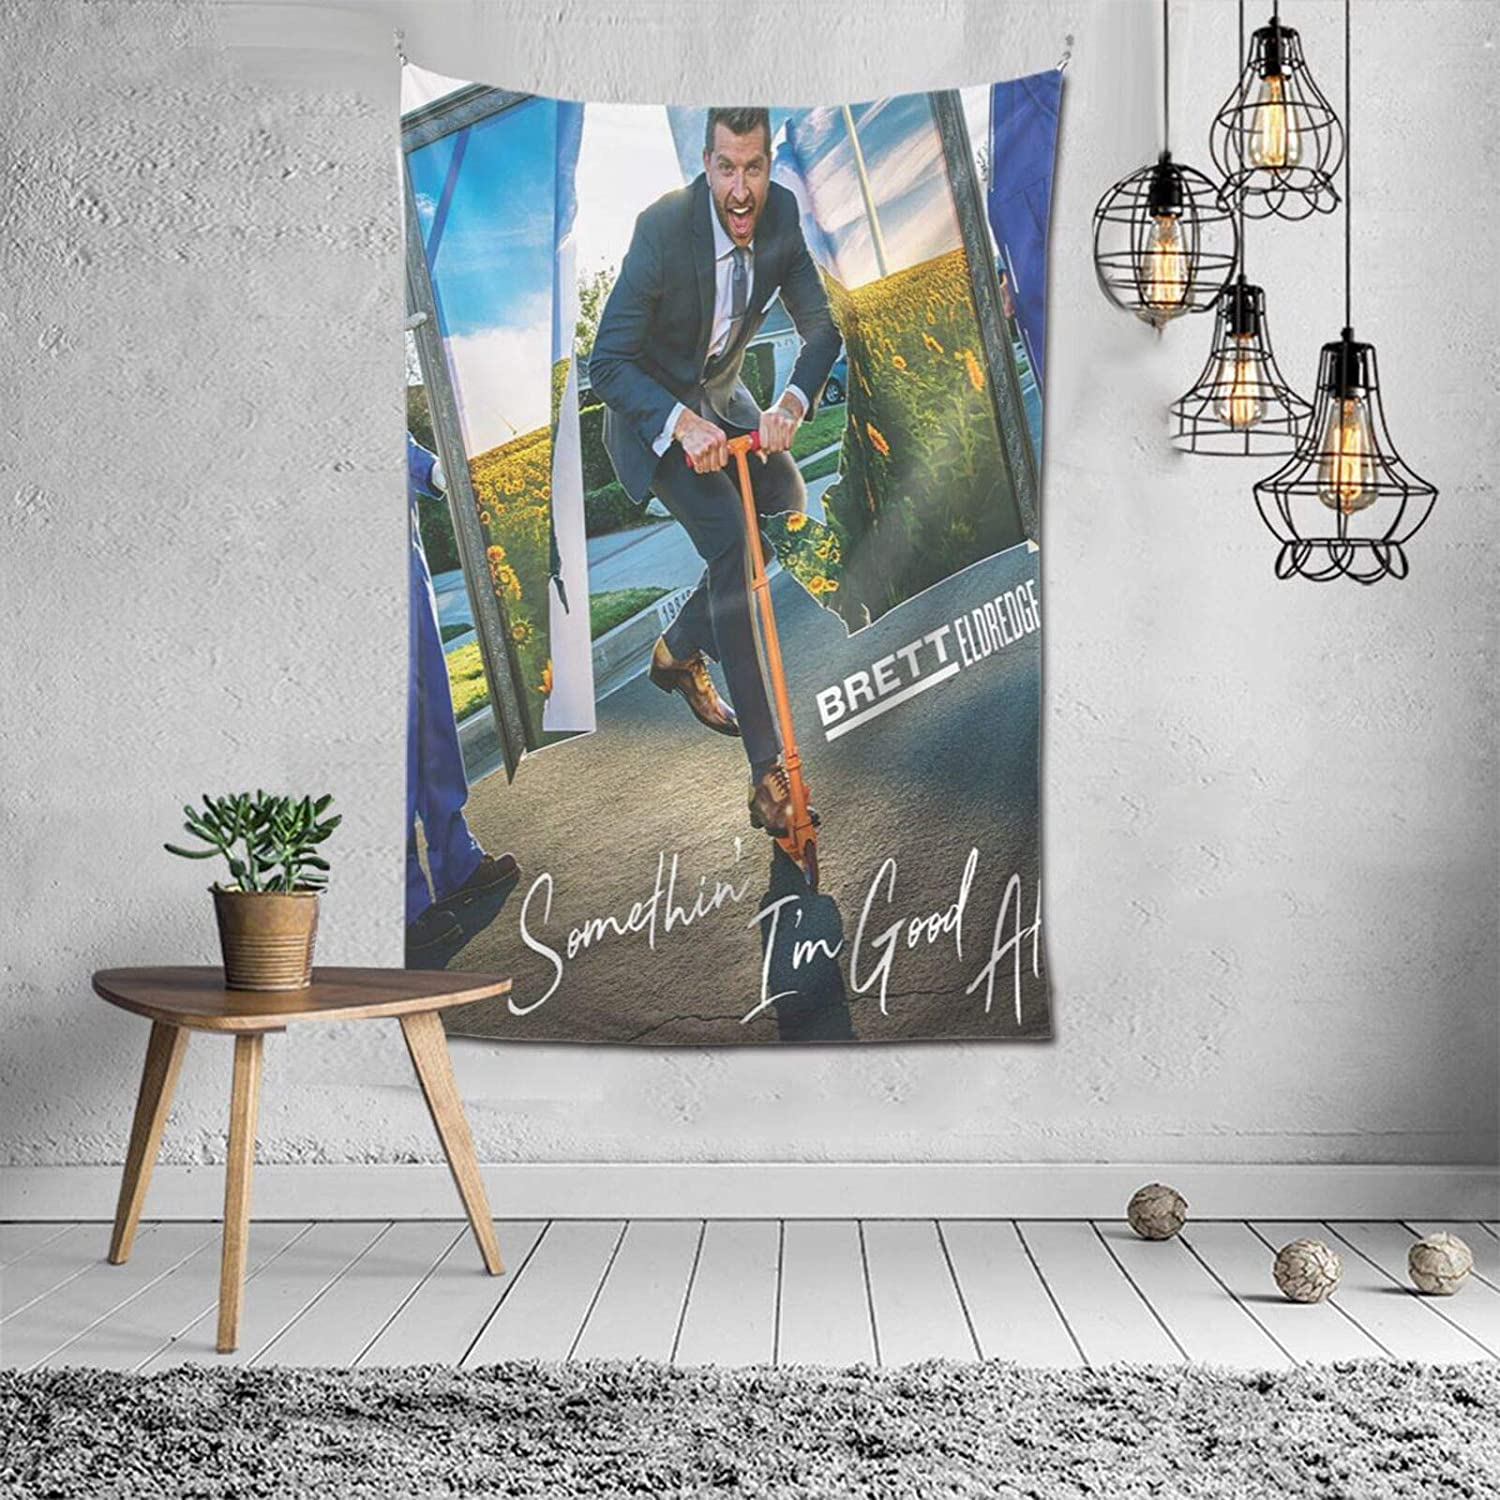 Brett Eldredge Tapestry Art Wall Hanging Bedding Wall Tapestry Decoration for Living Room Bedroom Dorm Home Decor Funny Gifts Tapestry 60x40 inch